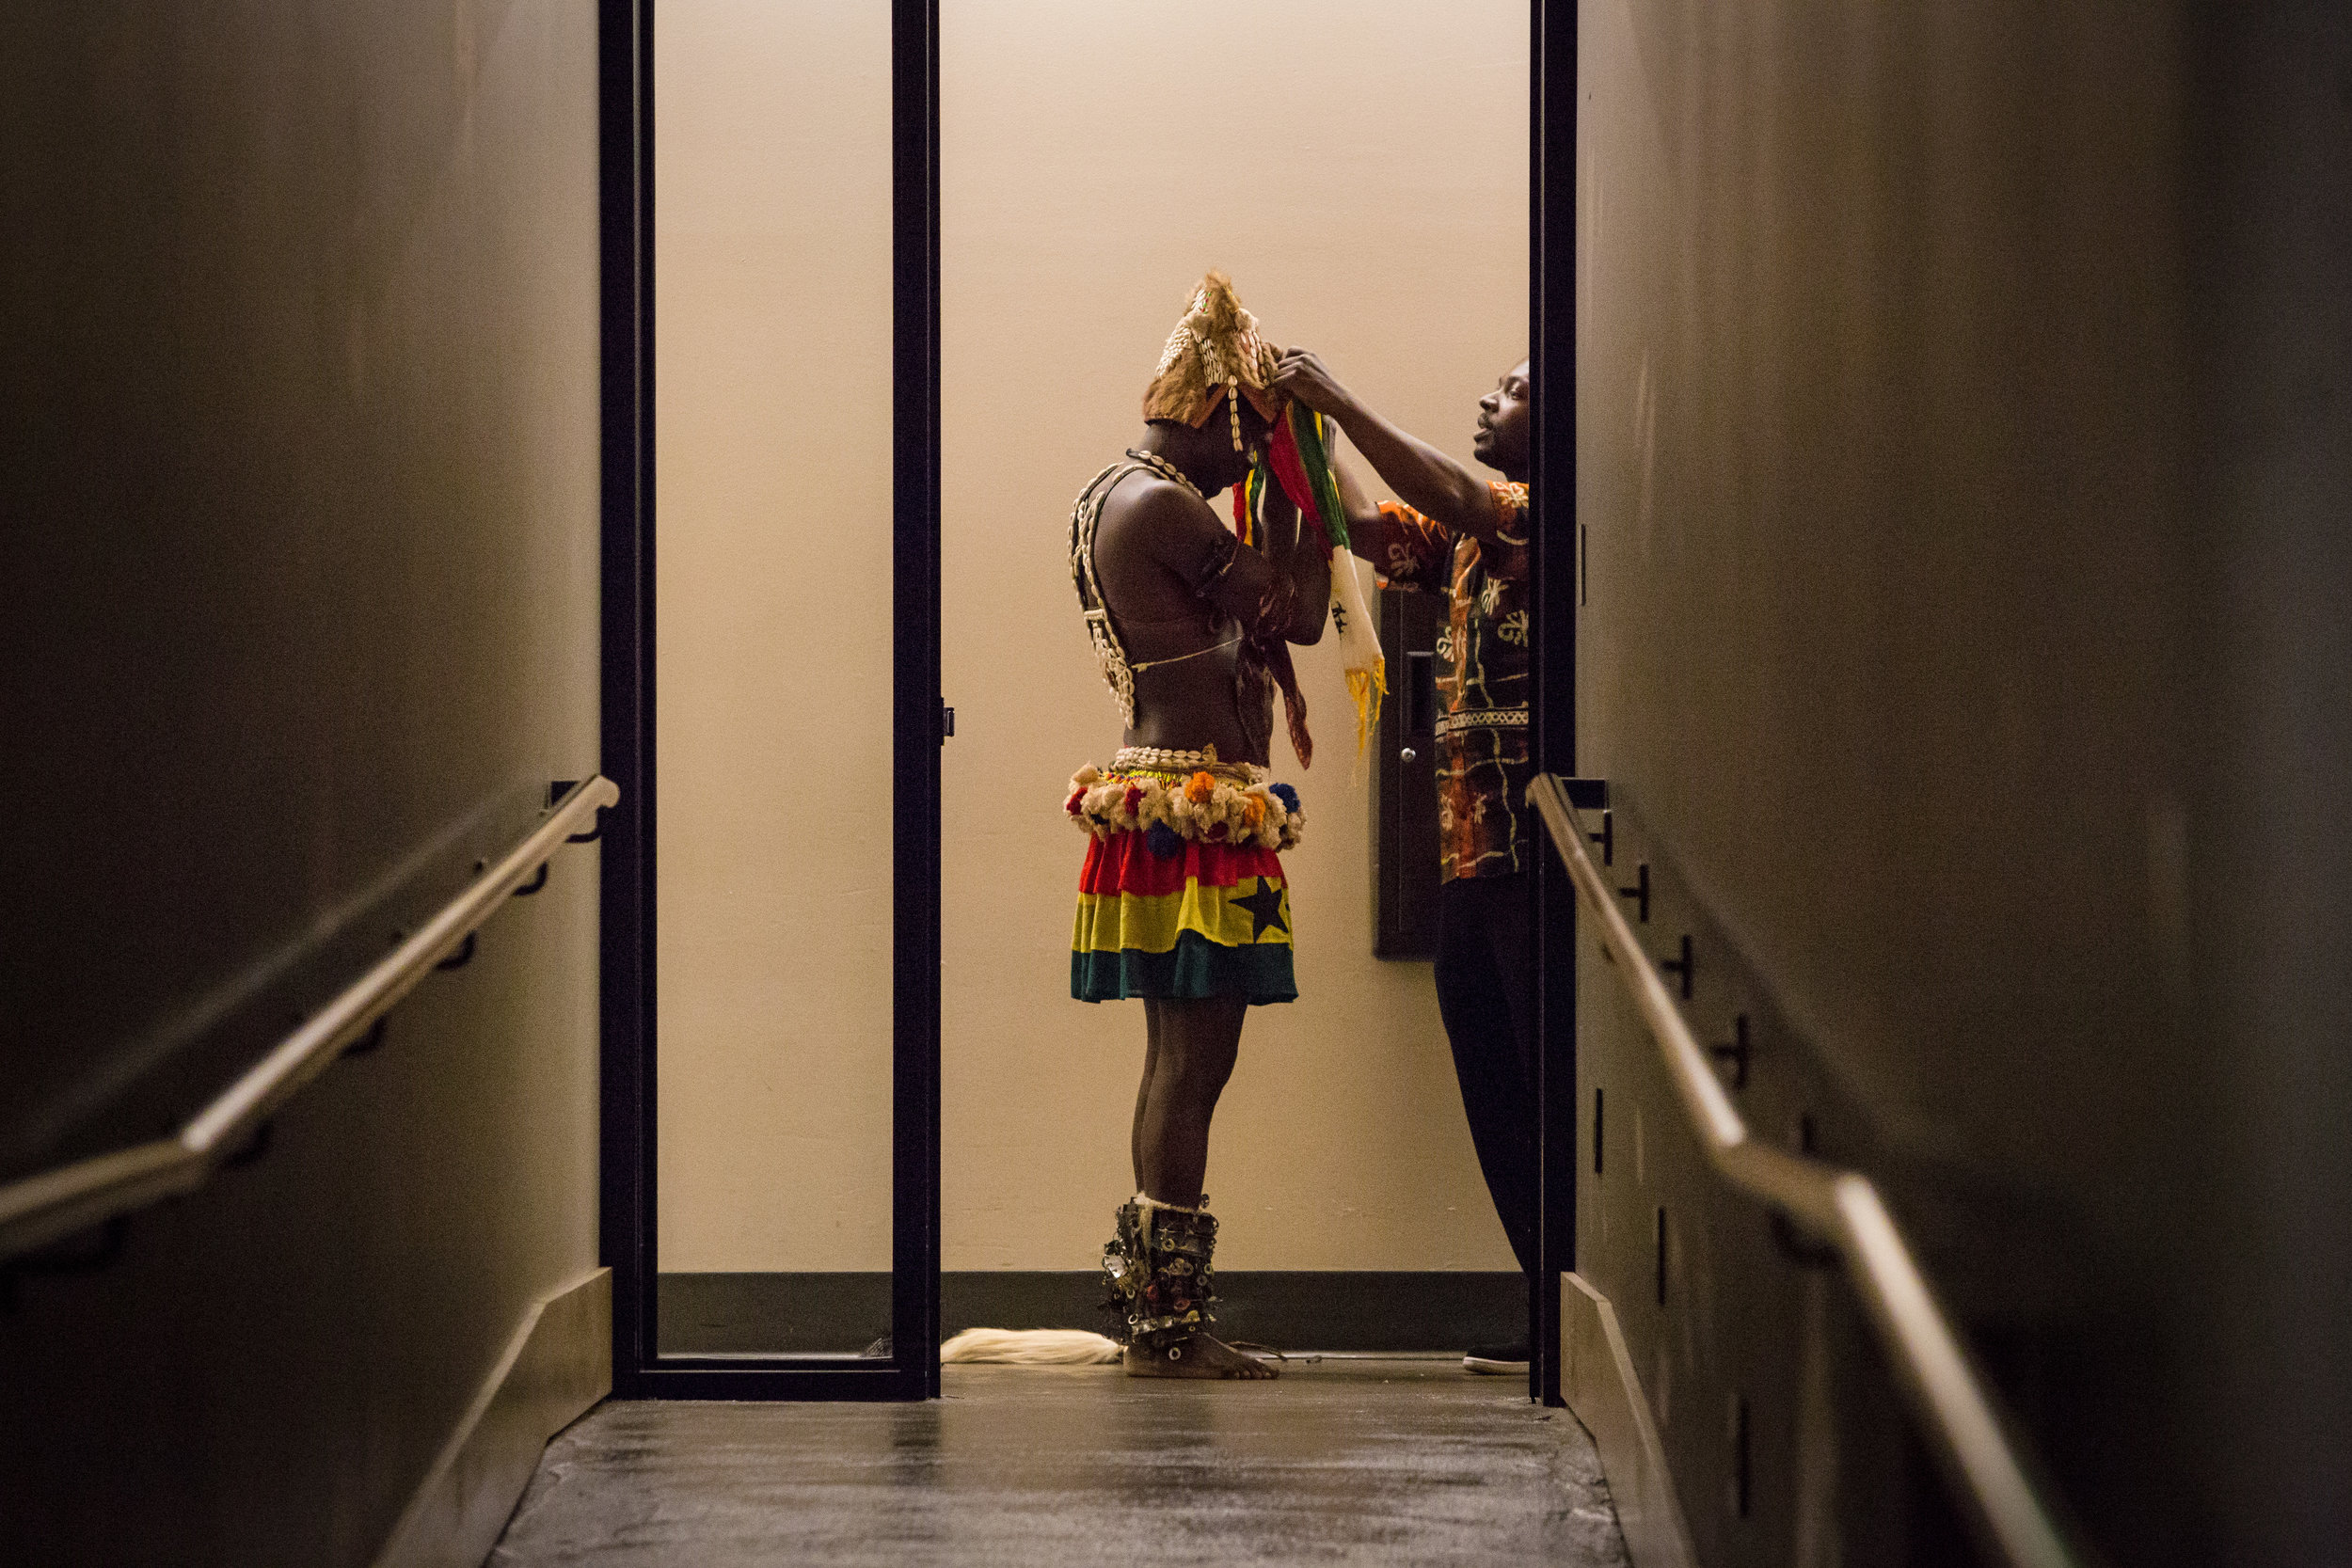 Members of Anokye Agofomma, a group that performs traditional music and dance from Ghana, get ready for their performance during Hugs for Ghana's annual Culture Night fundraiser on Friday, Mar. 18, 2016 in Mukilteo, Wa. Attendees gathered at the Rosehill Community Center to raise money for supplies for schools in Ghana.